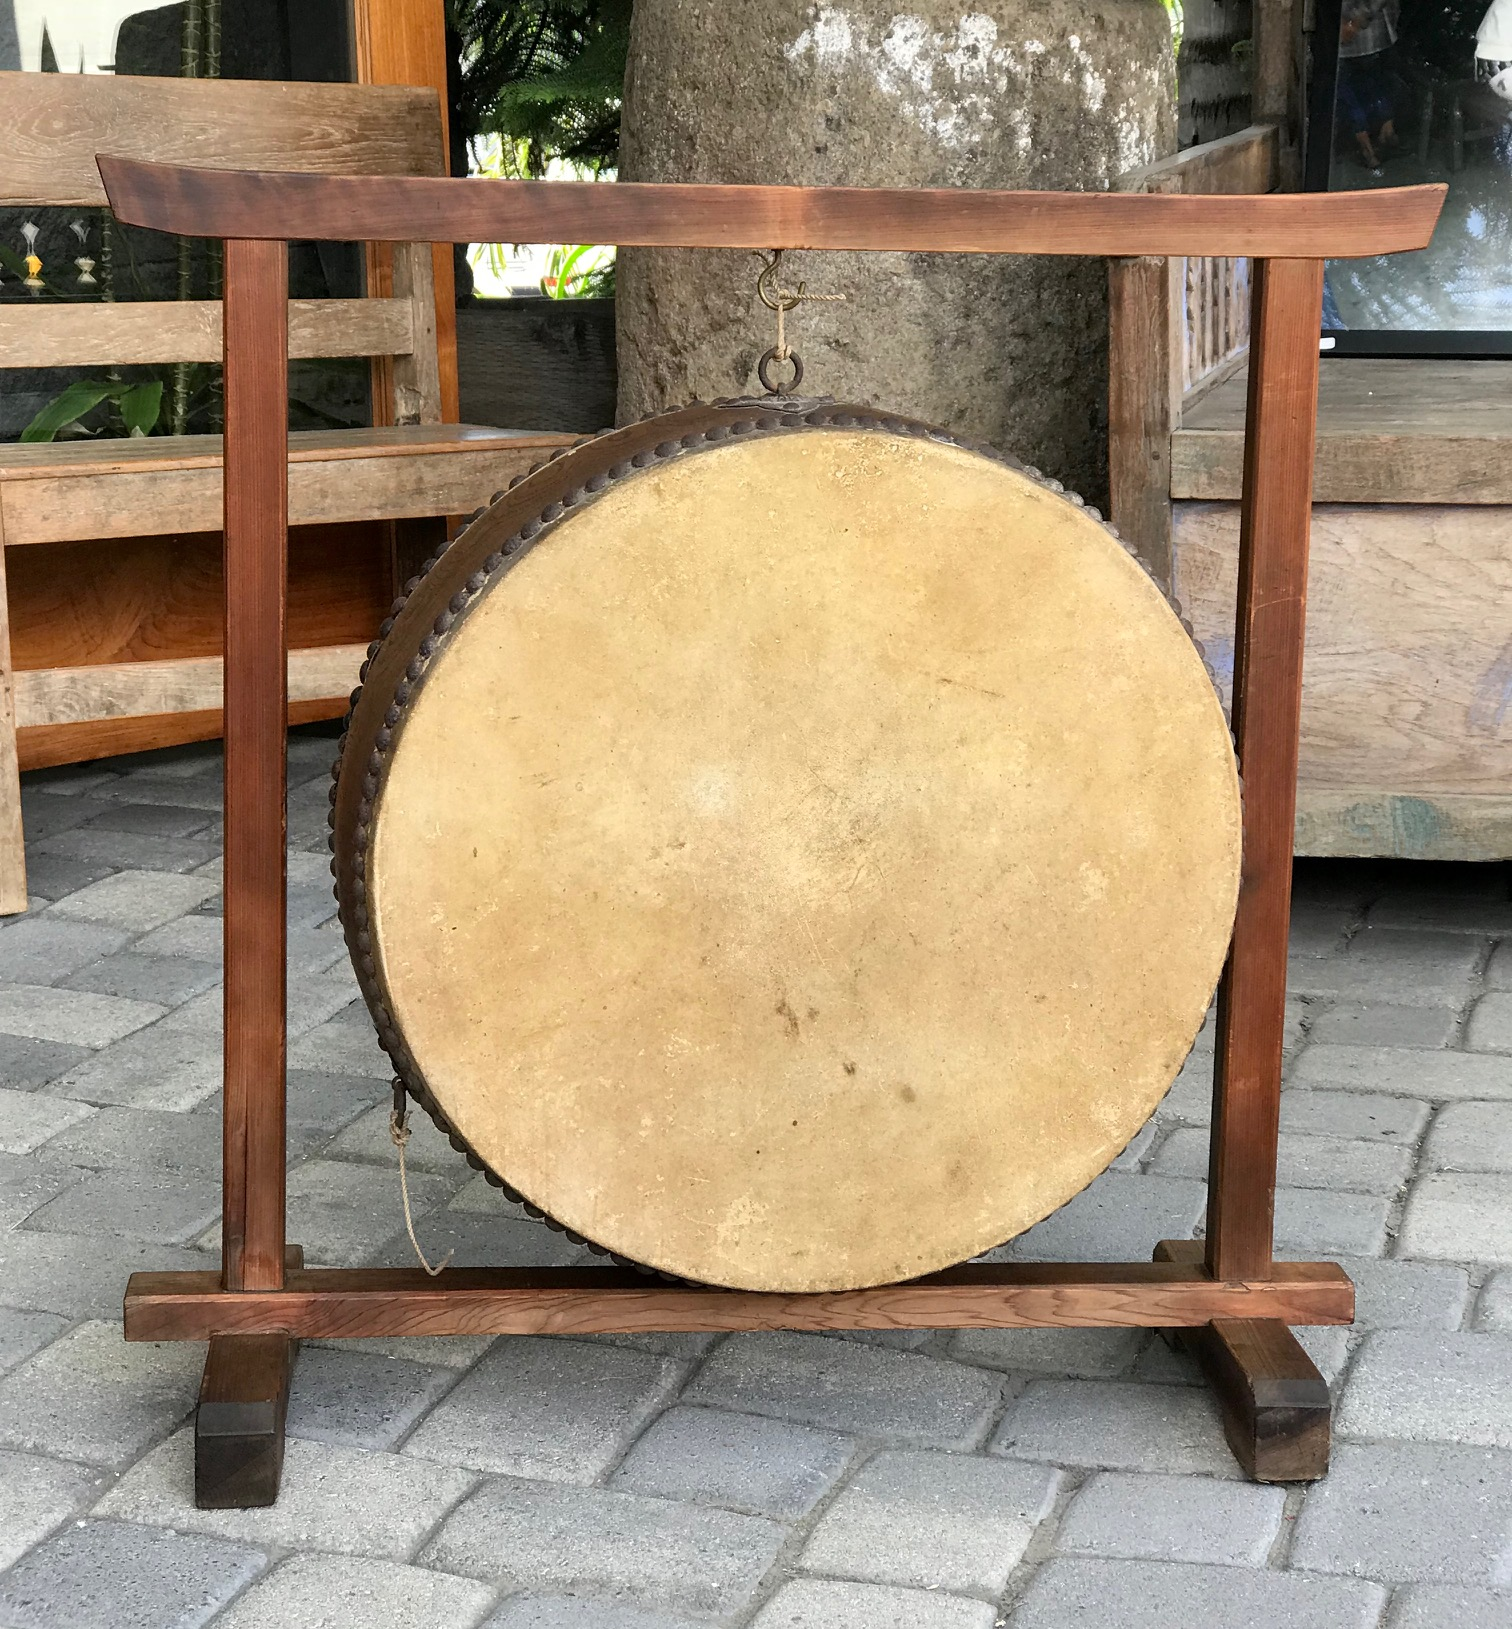 """Japanese Hanging Temple Drum, wood, rawhide, metal tacks and rings, 22 1/2"""" x 33"""", (31"""" x 33"""" with frame), $950.; thedavidalancollection.com , solana beach, ca"""